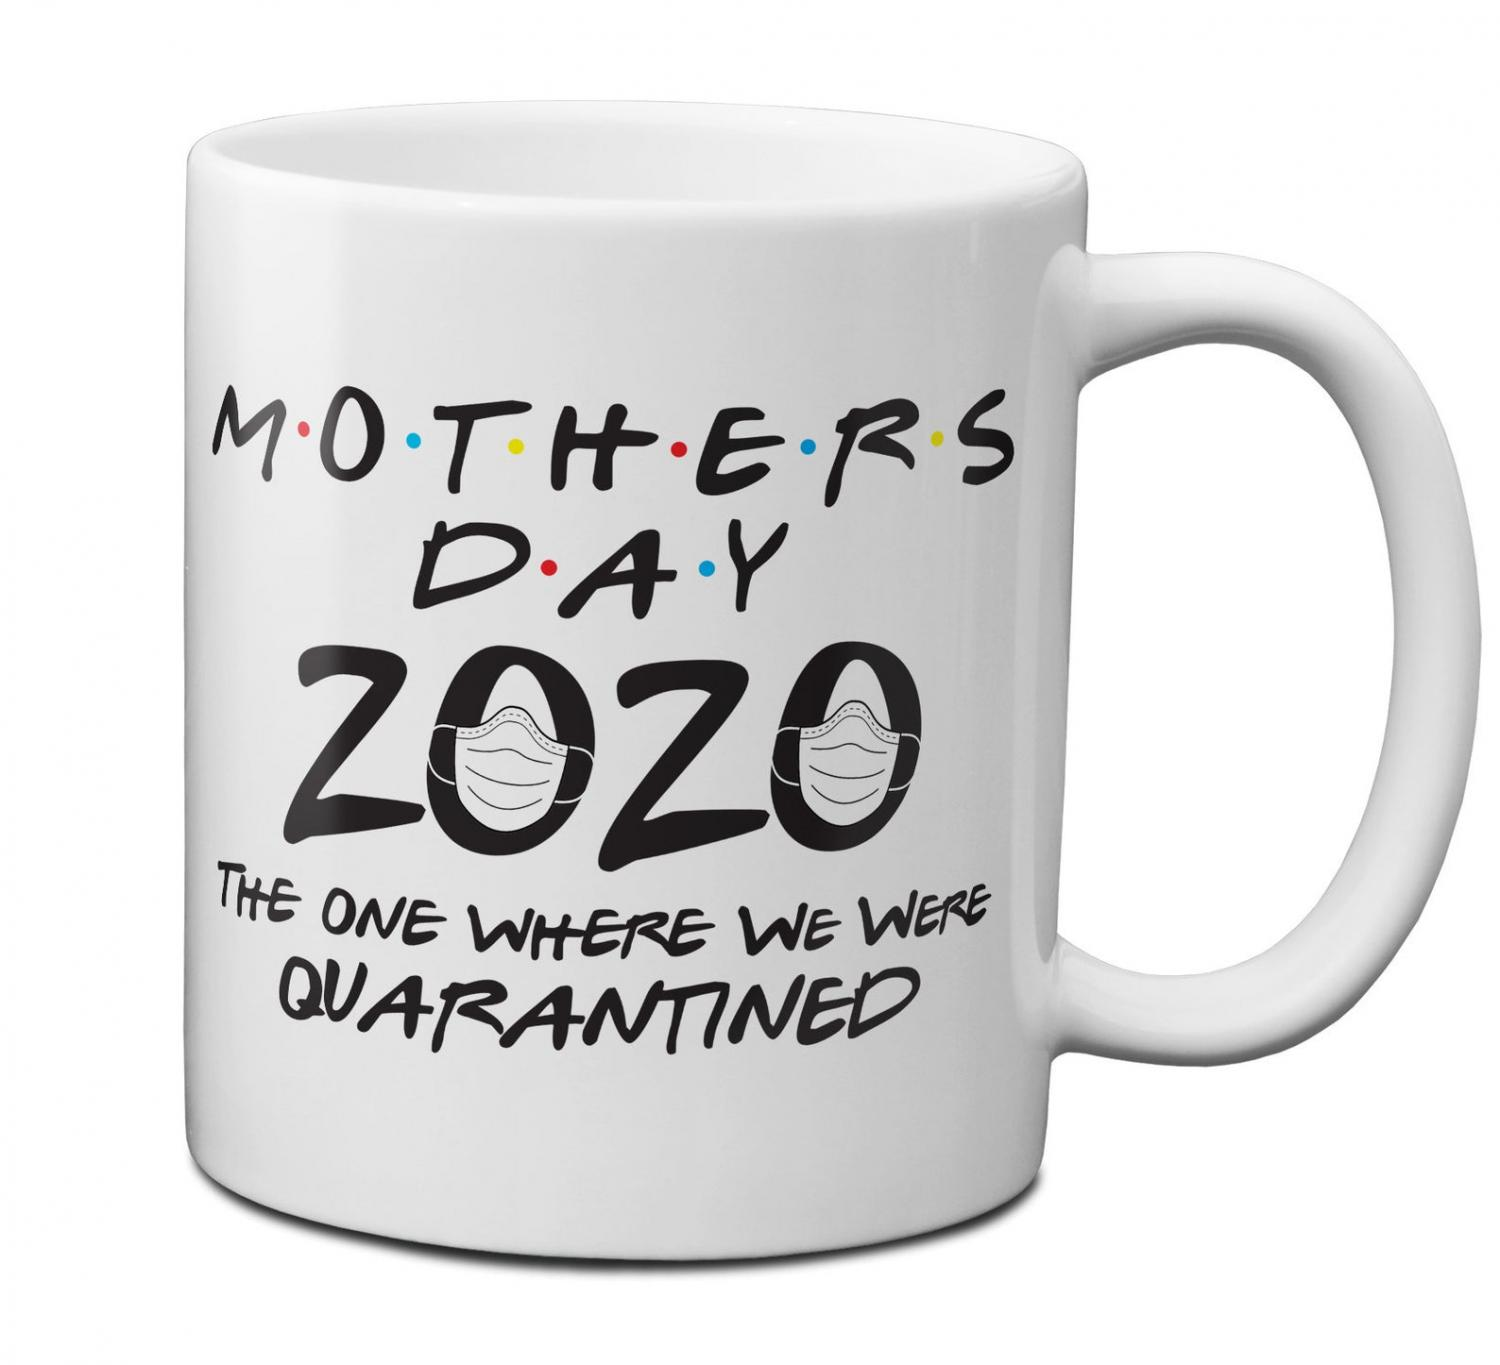 Mothers Day 2020 Coffee Mug - The One When We Were Quarantined (Friends TV Show Mothers Day mug)